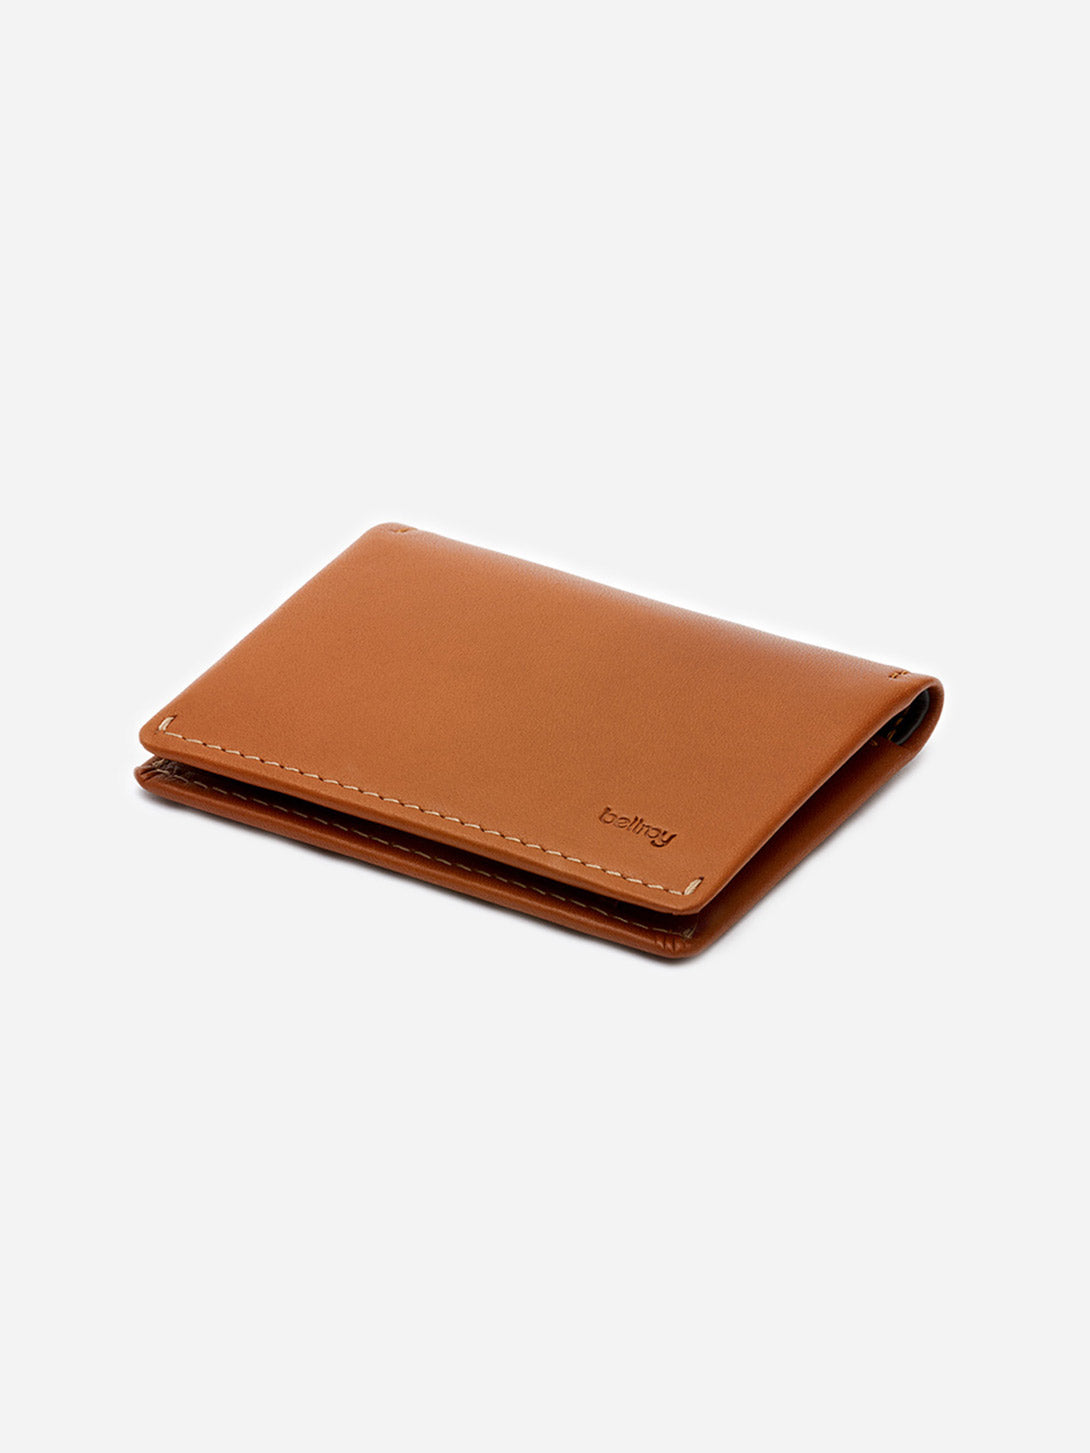 BELLROY SLIM SLEEVE WALLET CARAMEL